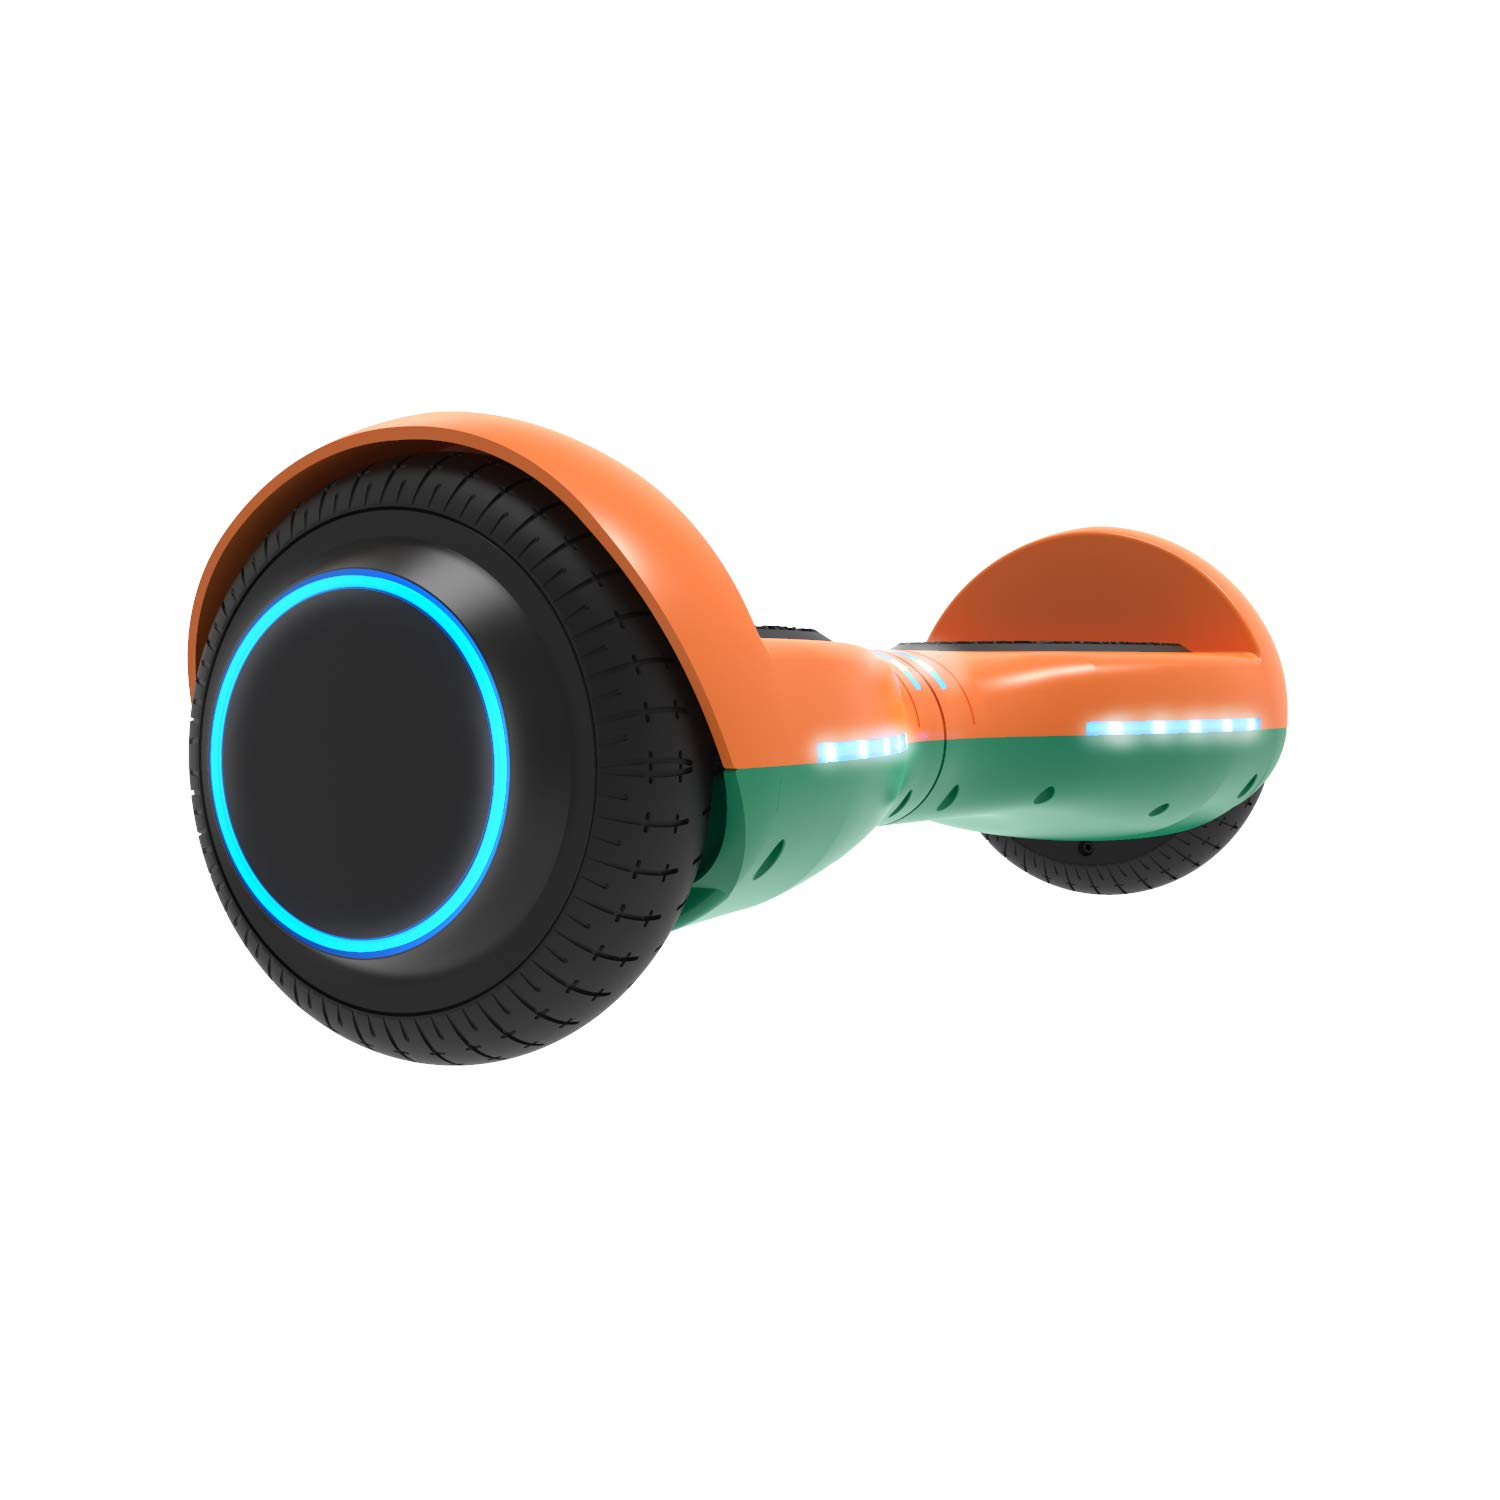 GOTRAX ION LED Hoverboard - UL Certified Hover Board w/Self Balancing Mode (Orange/Green)